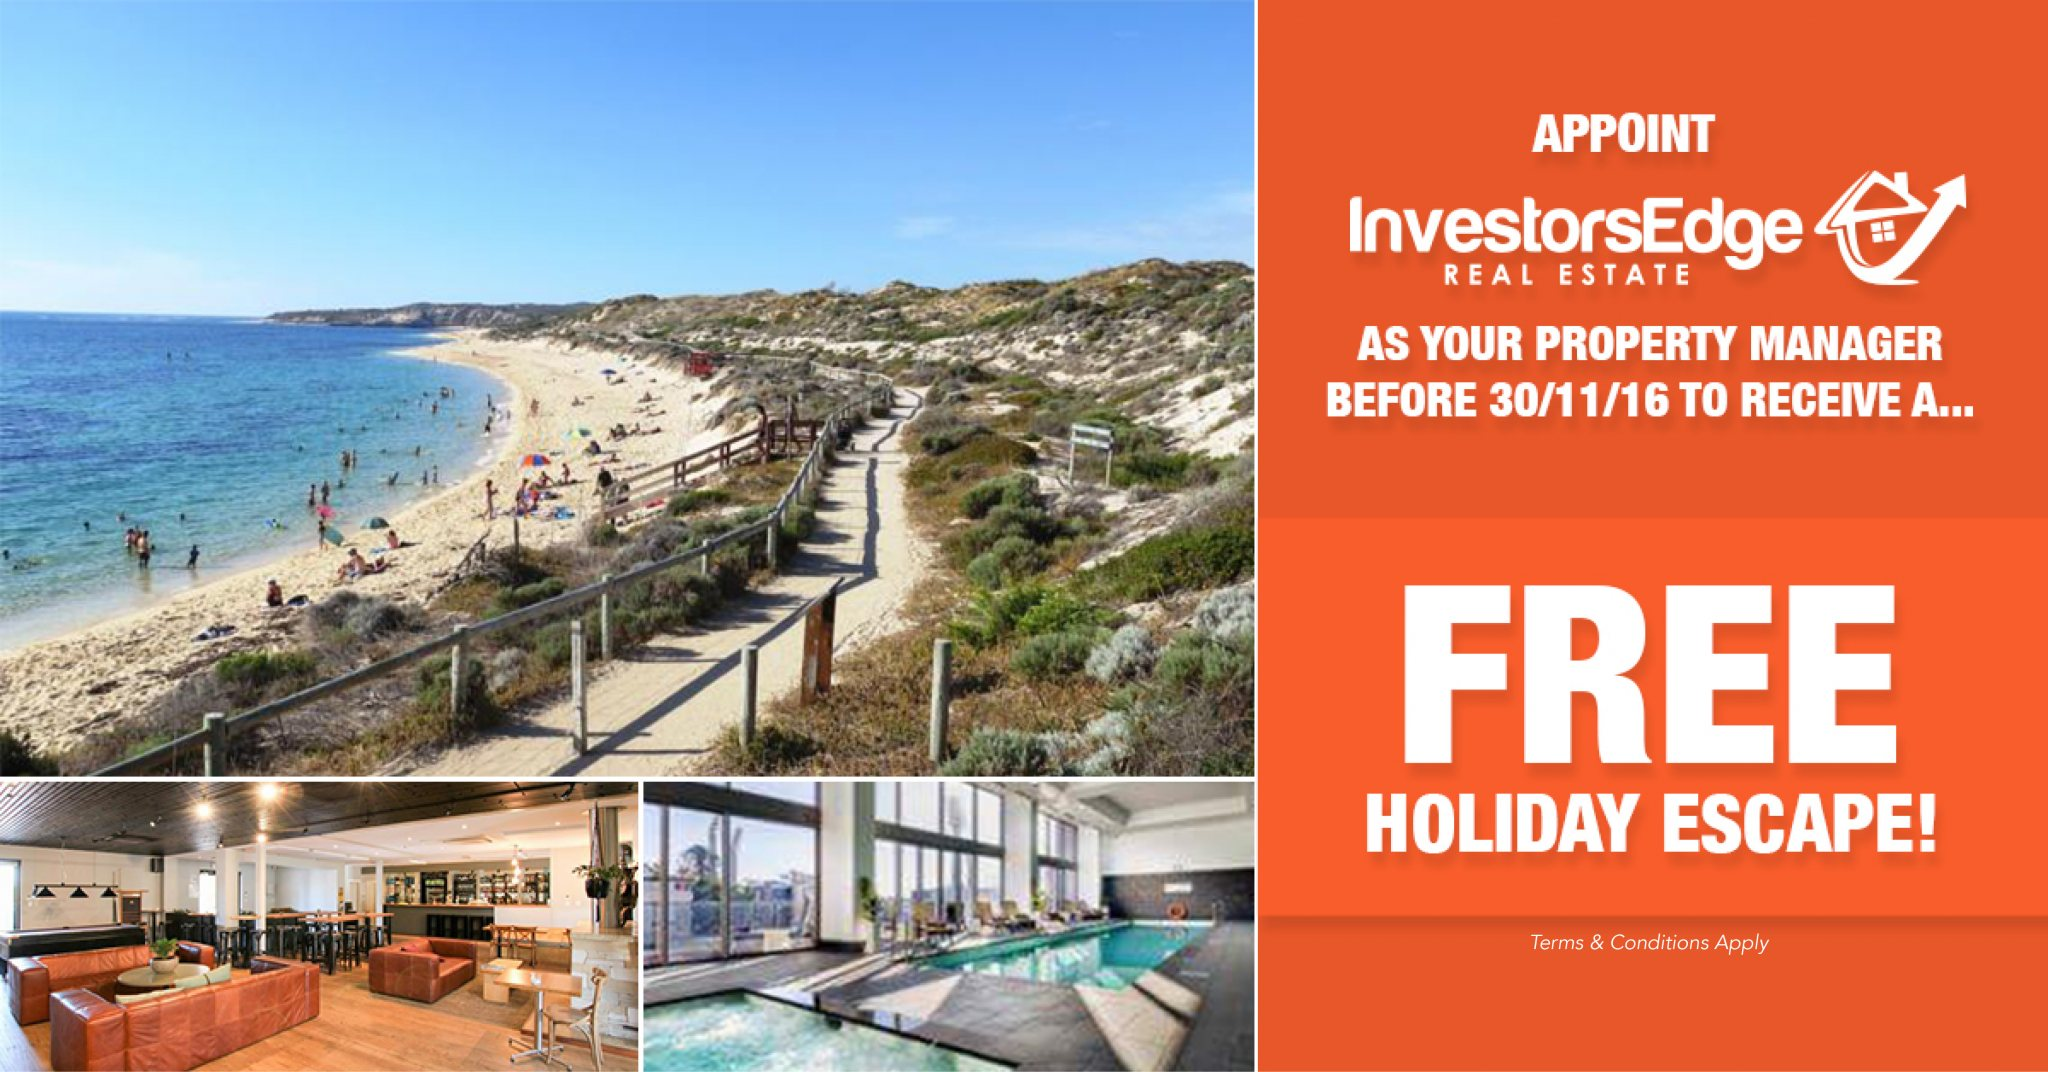 Property Management Luxury Holiday Escape Offer